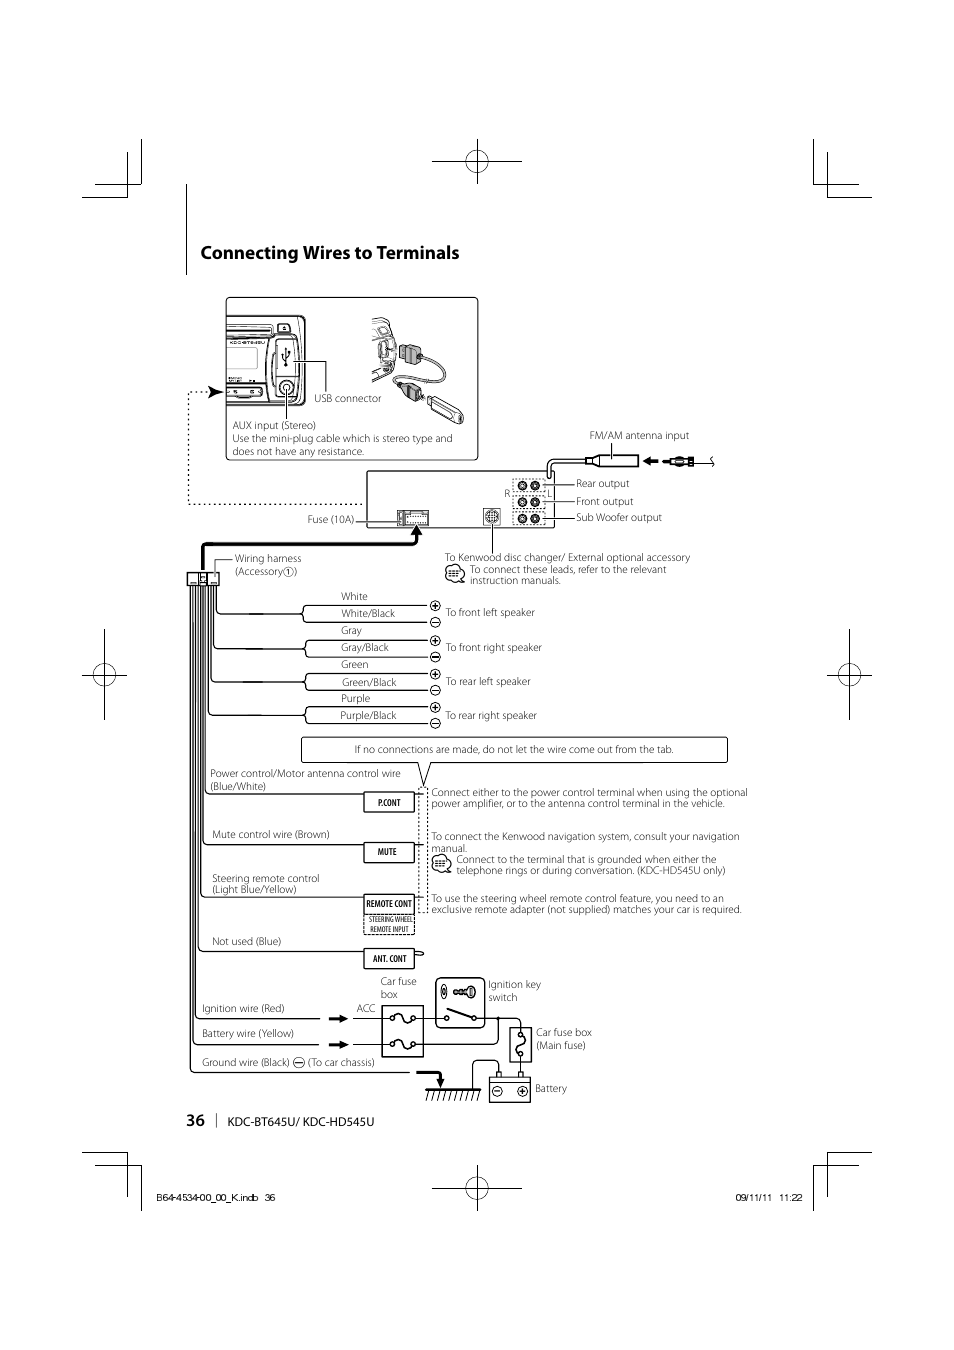 Kenwood Kdc 128 Wiring Harness Blog Diagram Mp338 Colors Connecting Wires To Terminals Hd545u User Manual Mobile Audio